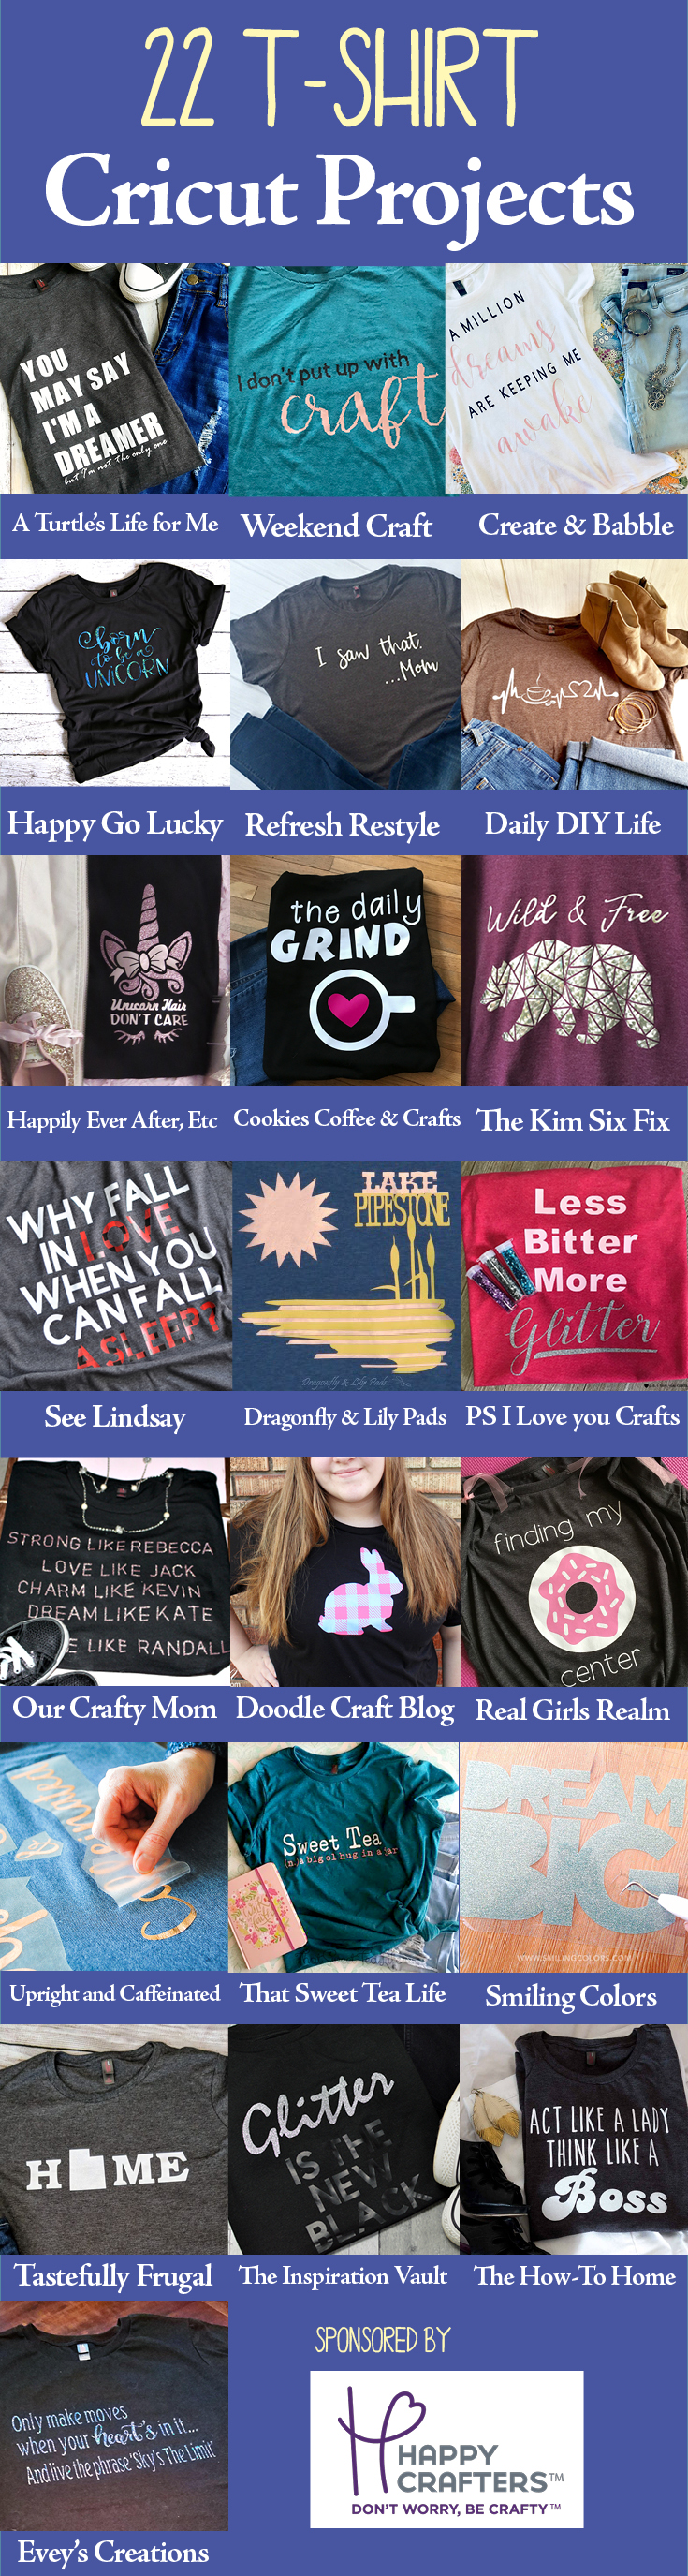 22 Tshirt Cricut Projects